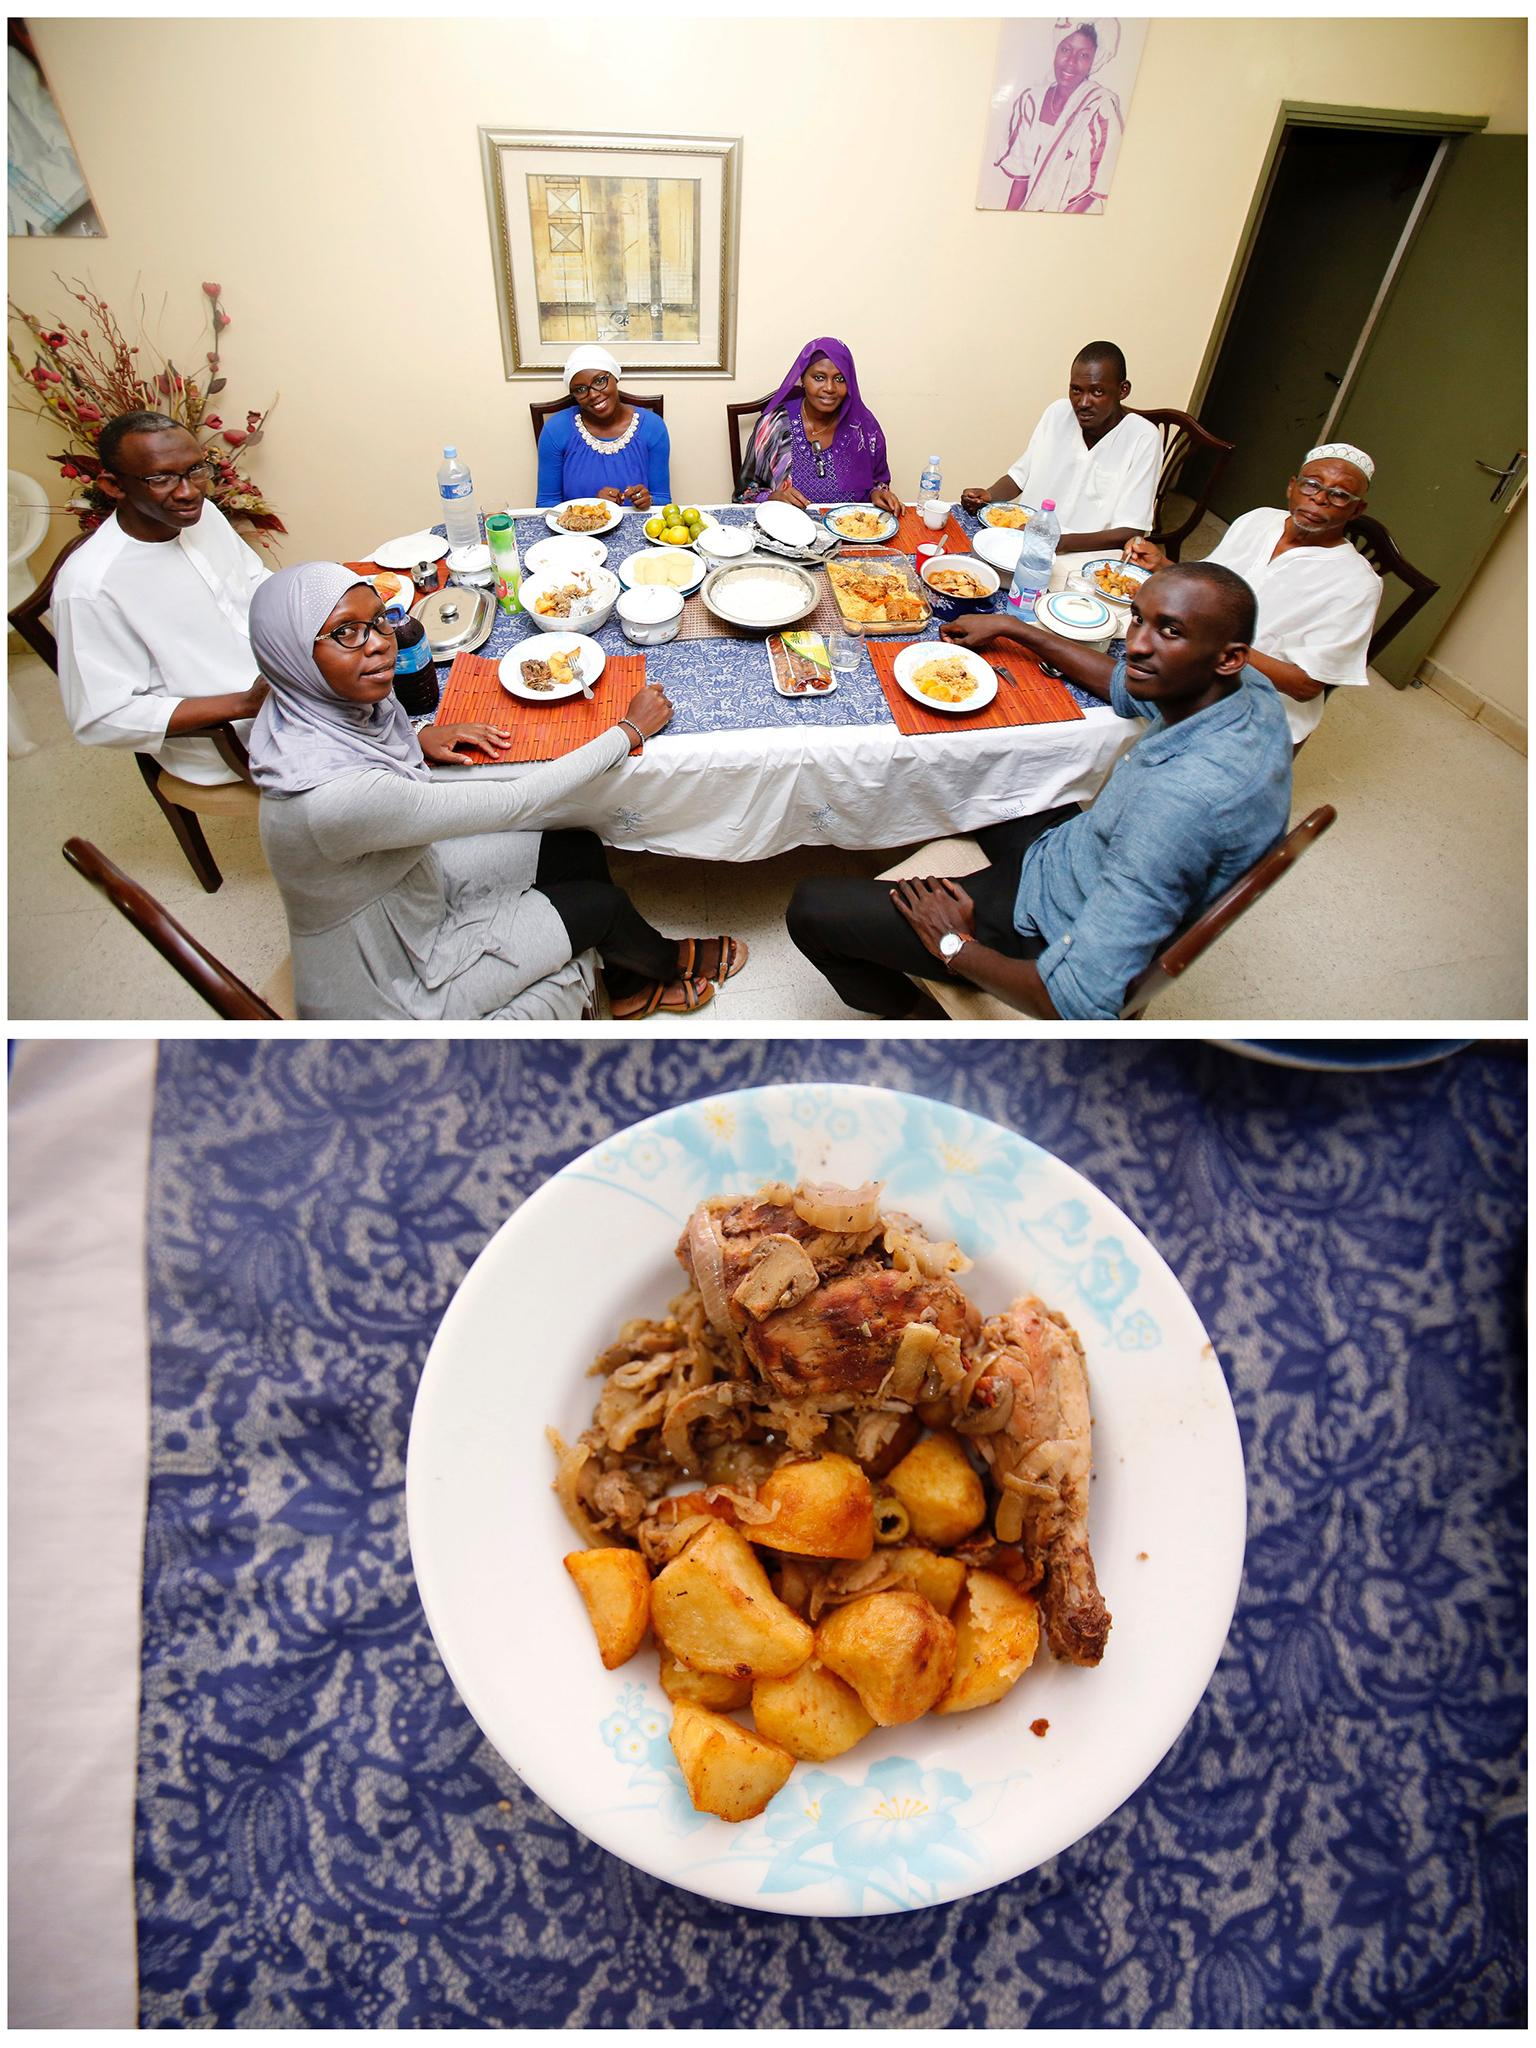 Iftar: Muslims share favourite memories of ending their daily